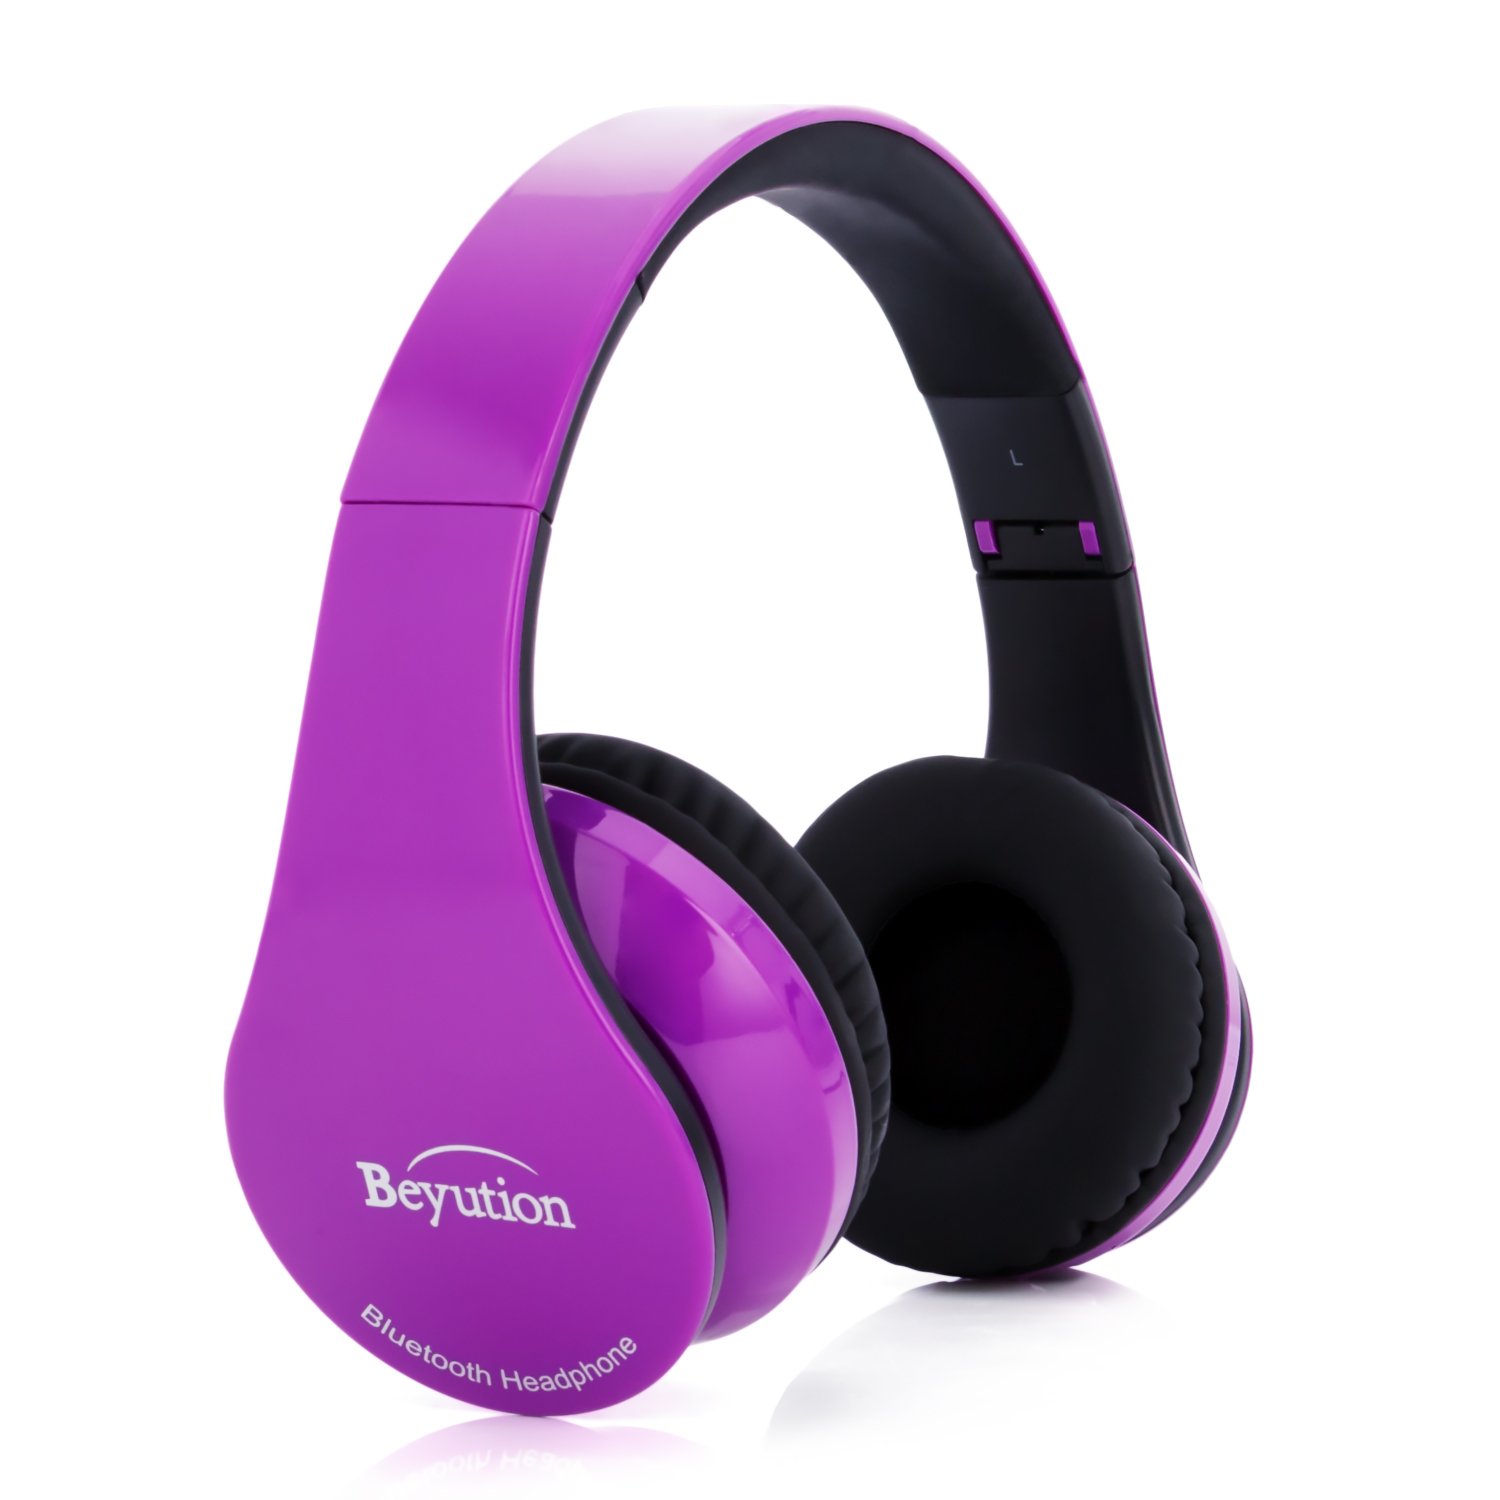 Beyution V4.1 Bluetooth Headphones Wireless Foldable Hi-fi Stereo Headphone with Micphone for Smart Phones & Tablets - Purepurple